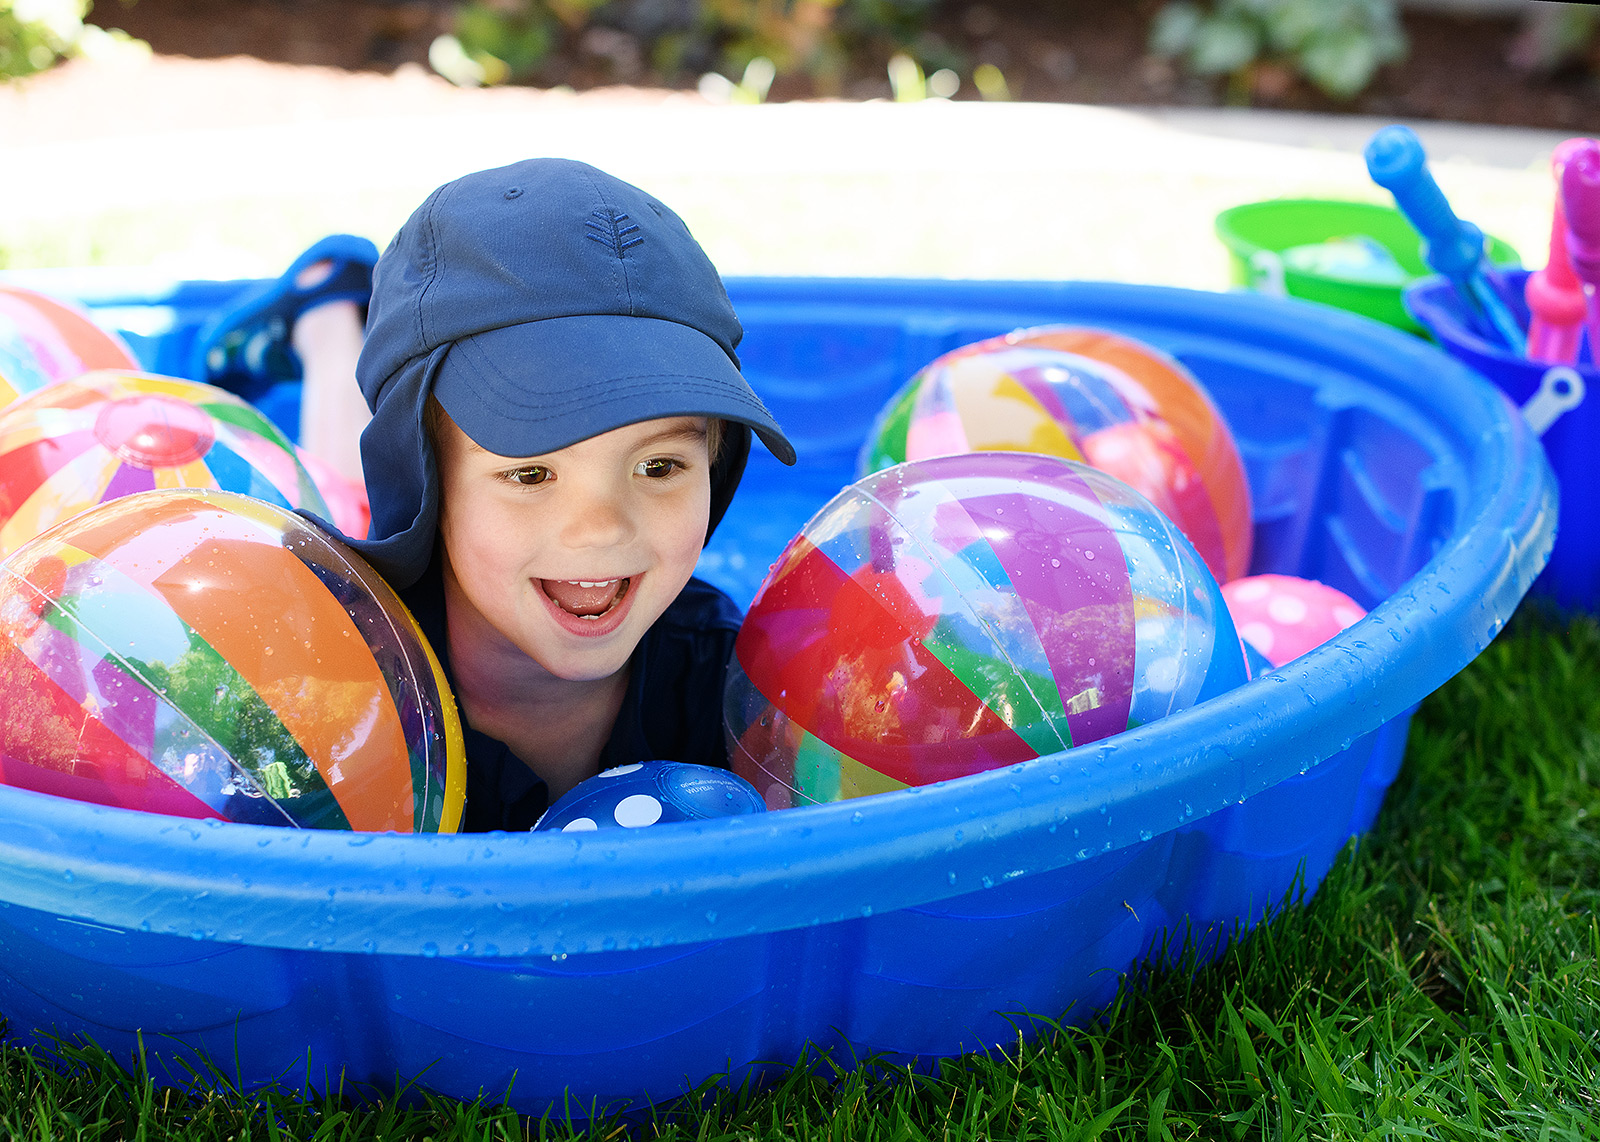 Boy in ball pit enjoying first birthday party